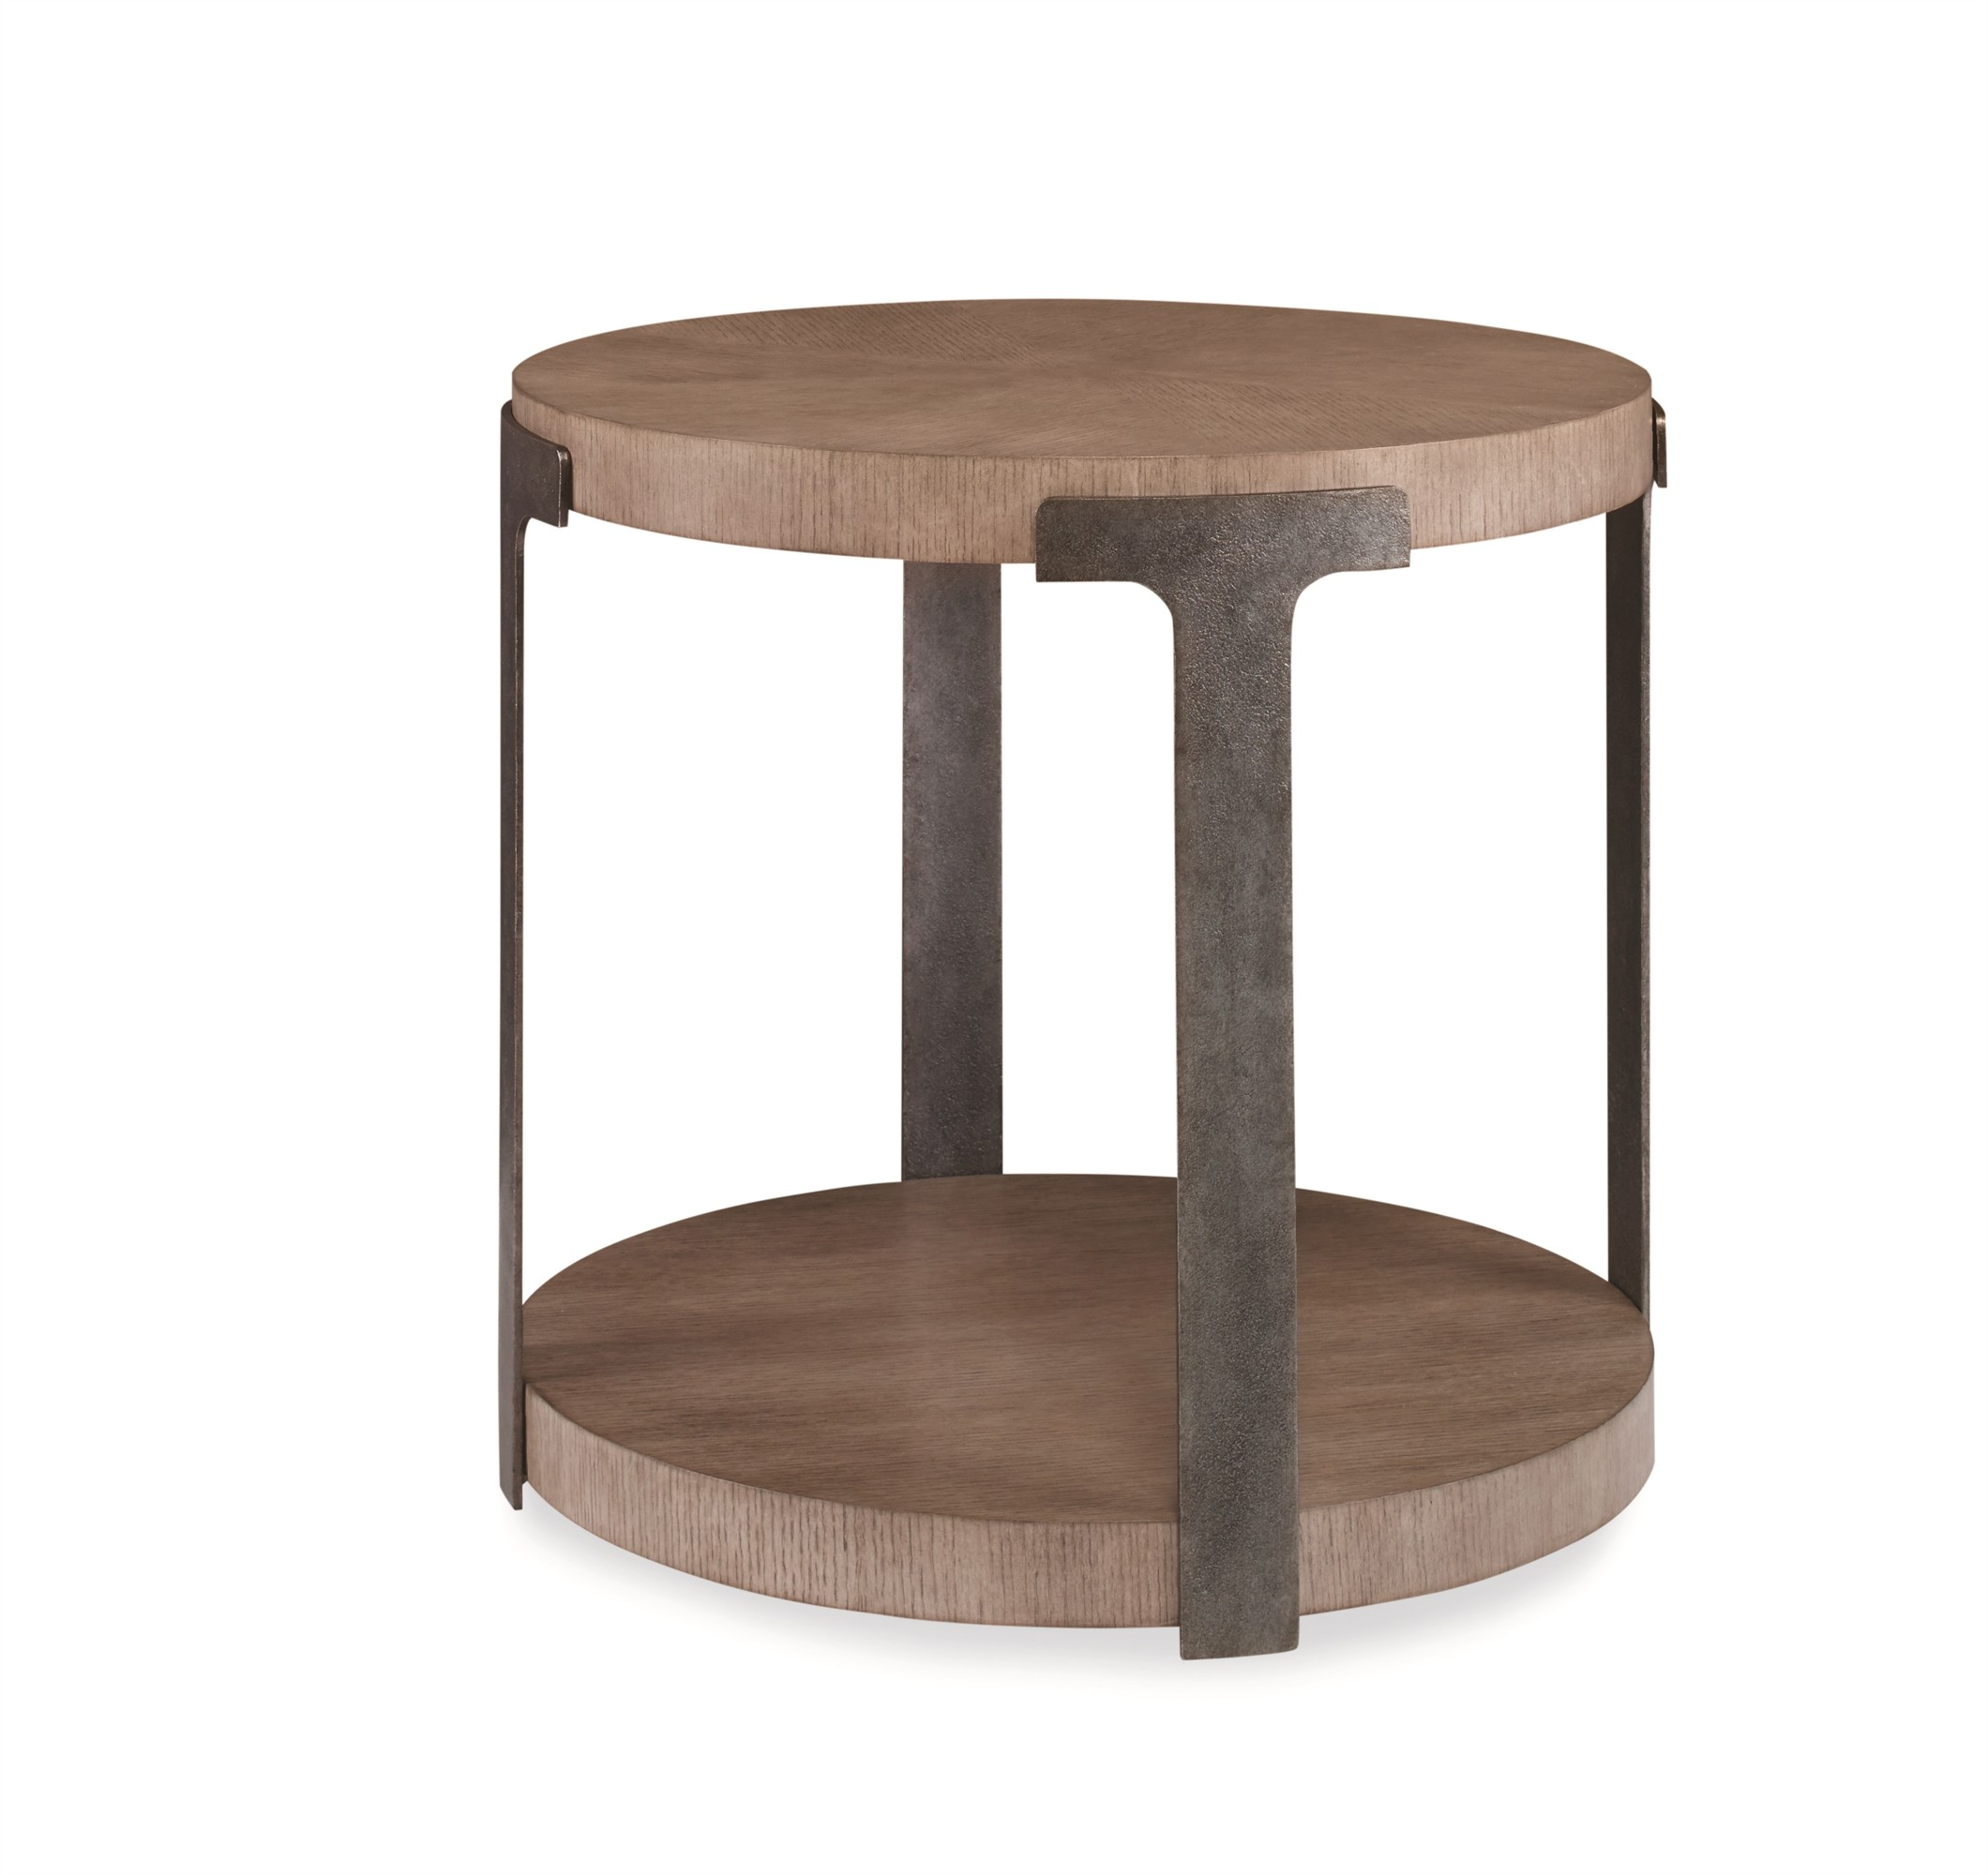 Casa Bella Sunburst Chairside Table - Timber Gray Finish